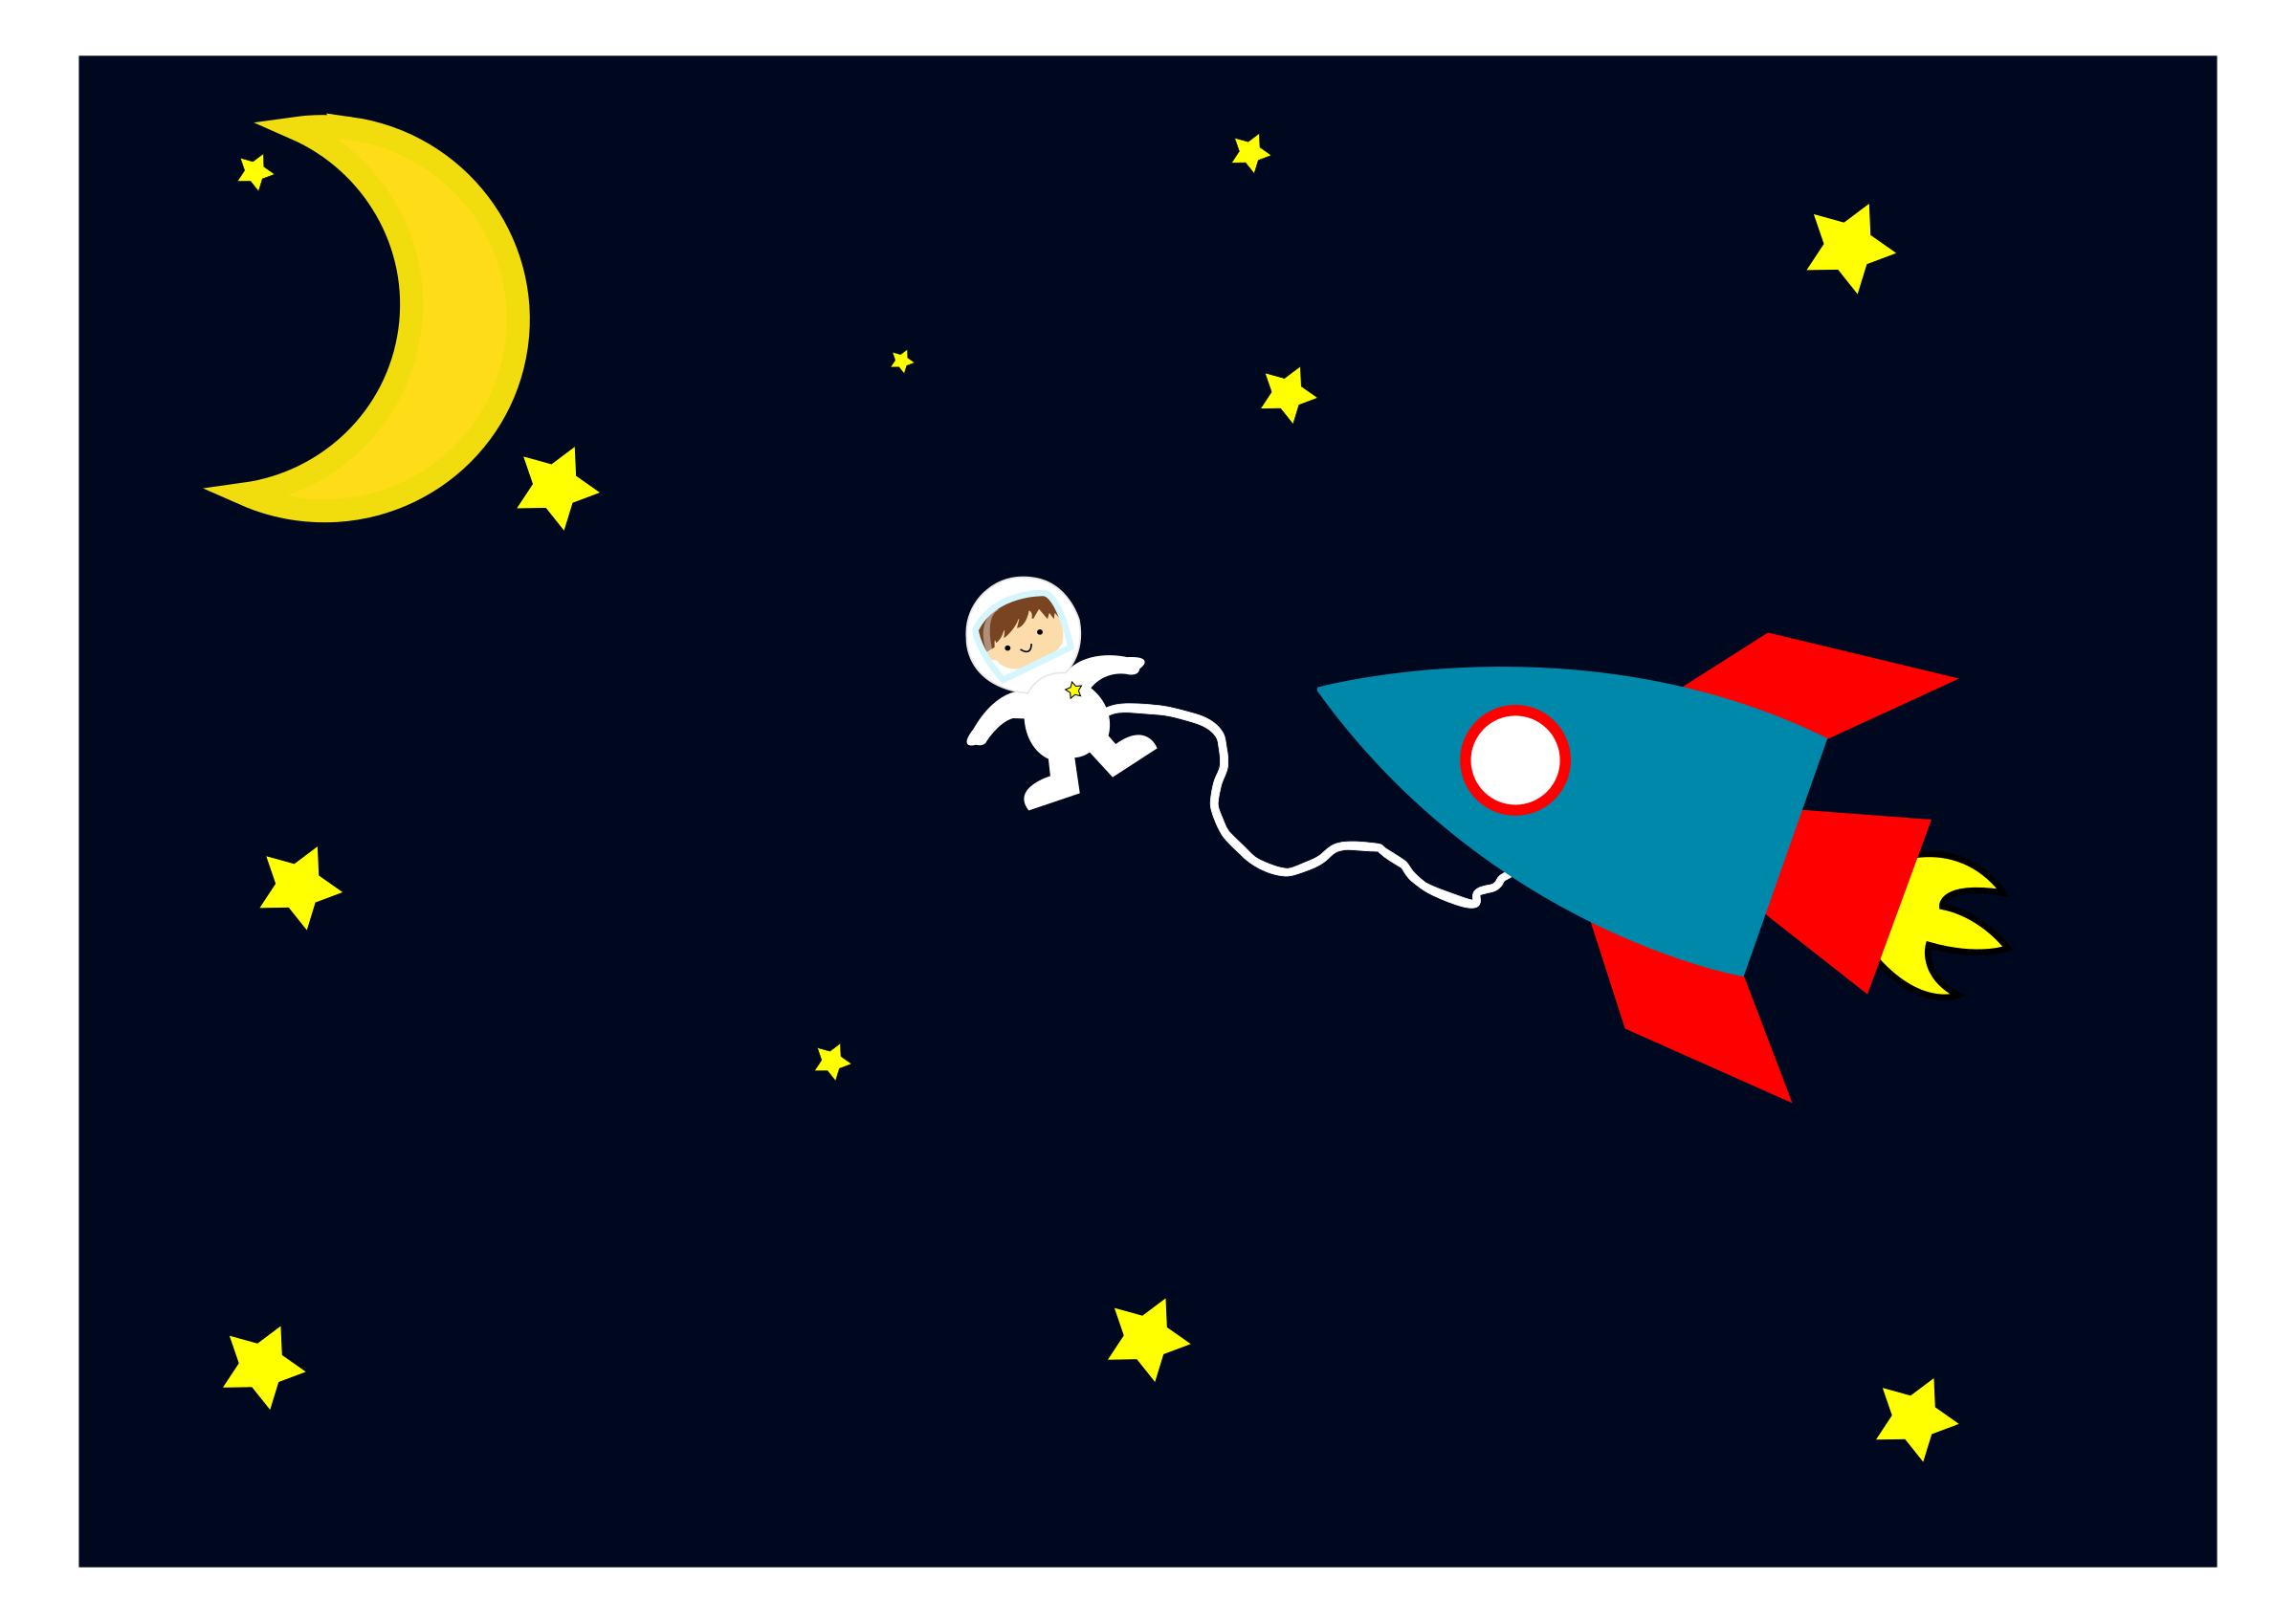 Astronaut out of the. Clipart rocket space rocket